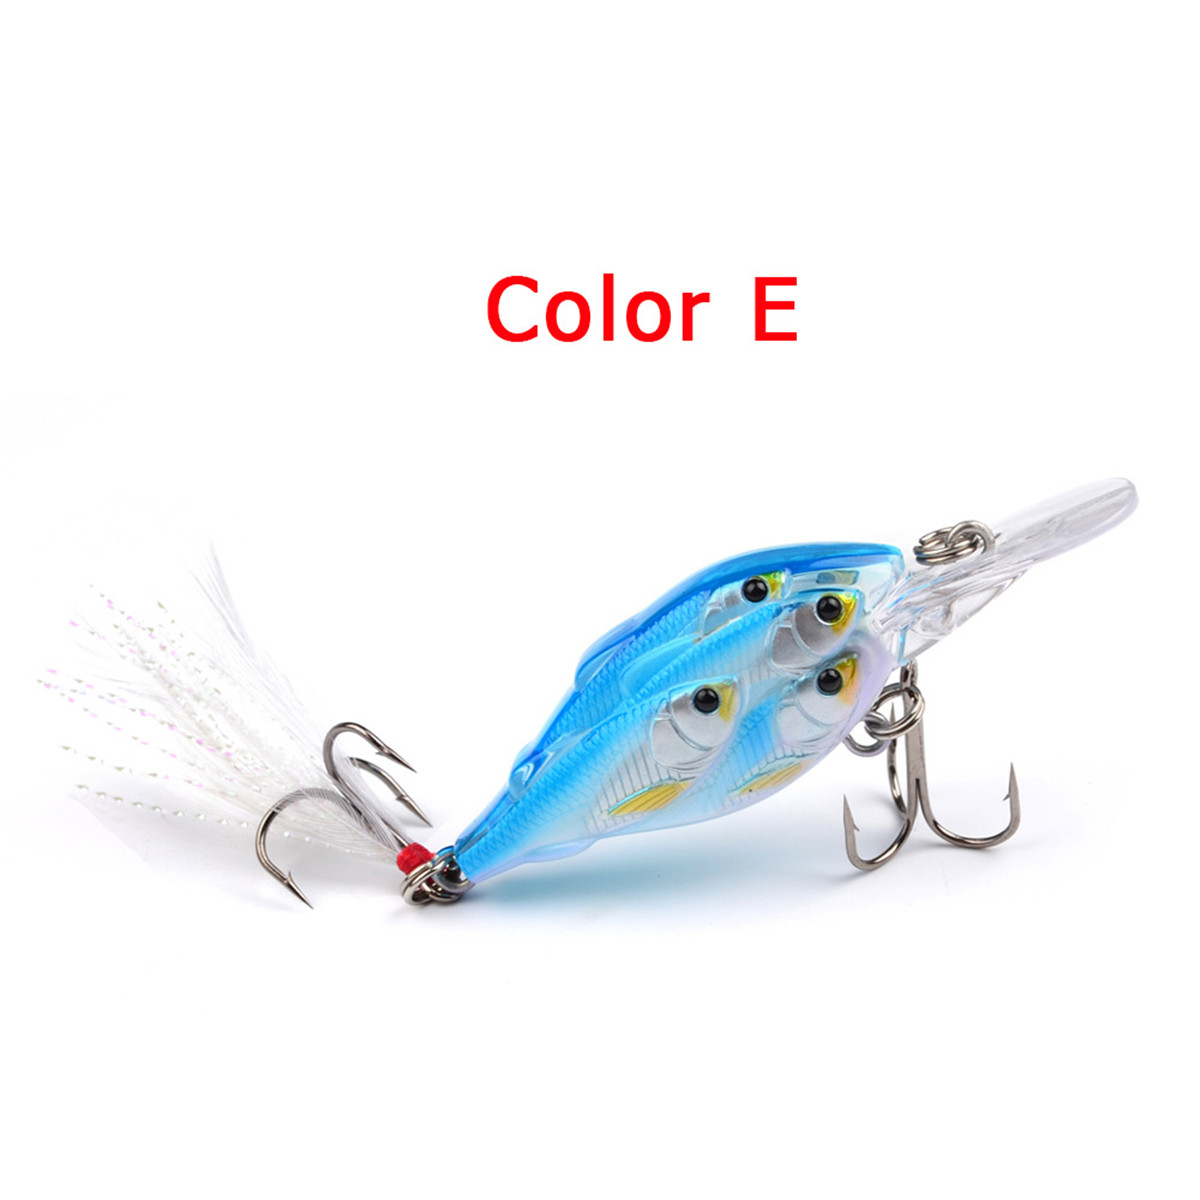 ZANLURE 5Pcs/Set 7cm 6.2g Fishing Lure Crankbaits Hook Fish Crank Tackle Lipless Swimbait Hard Lures